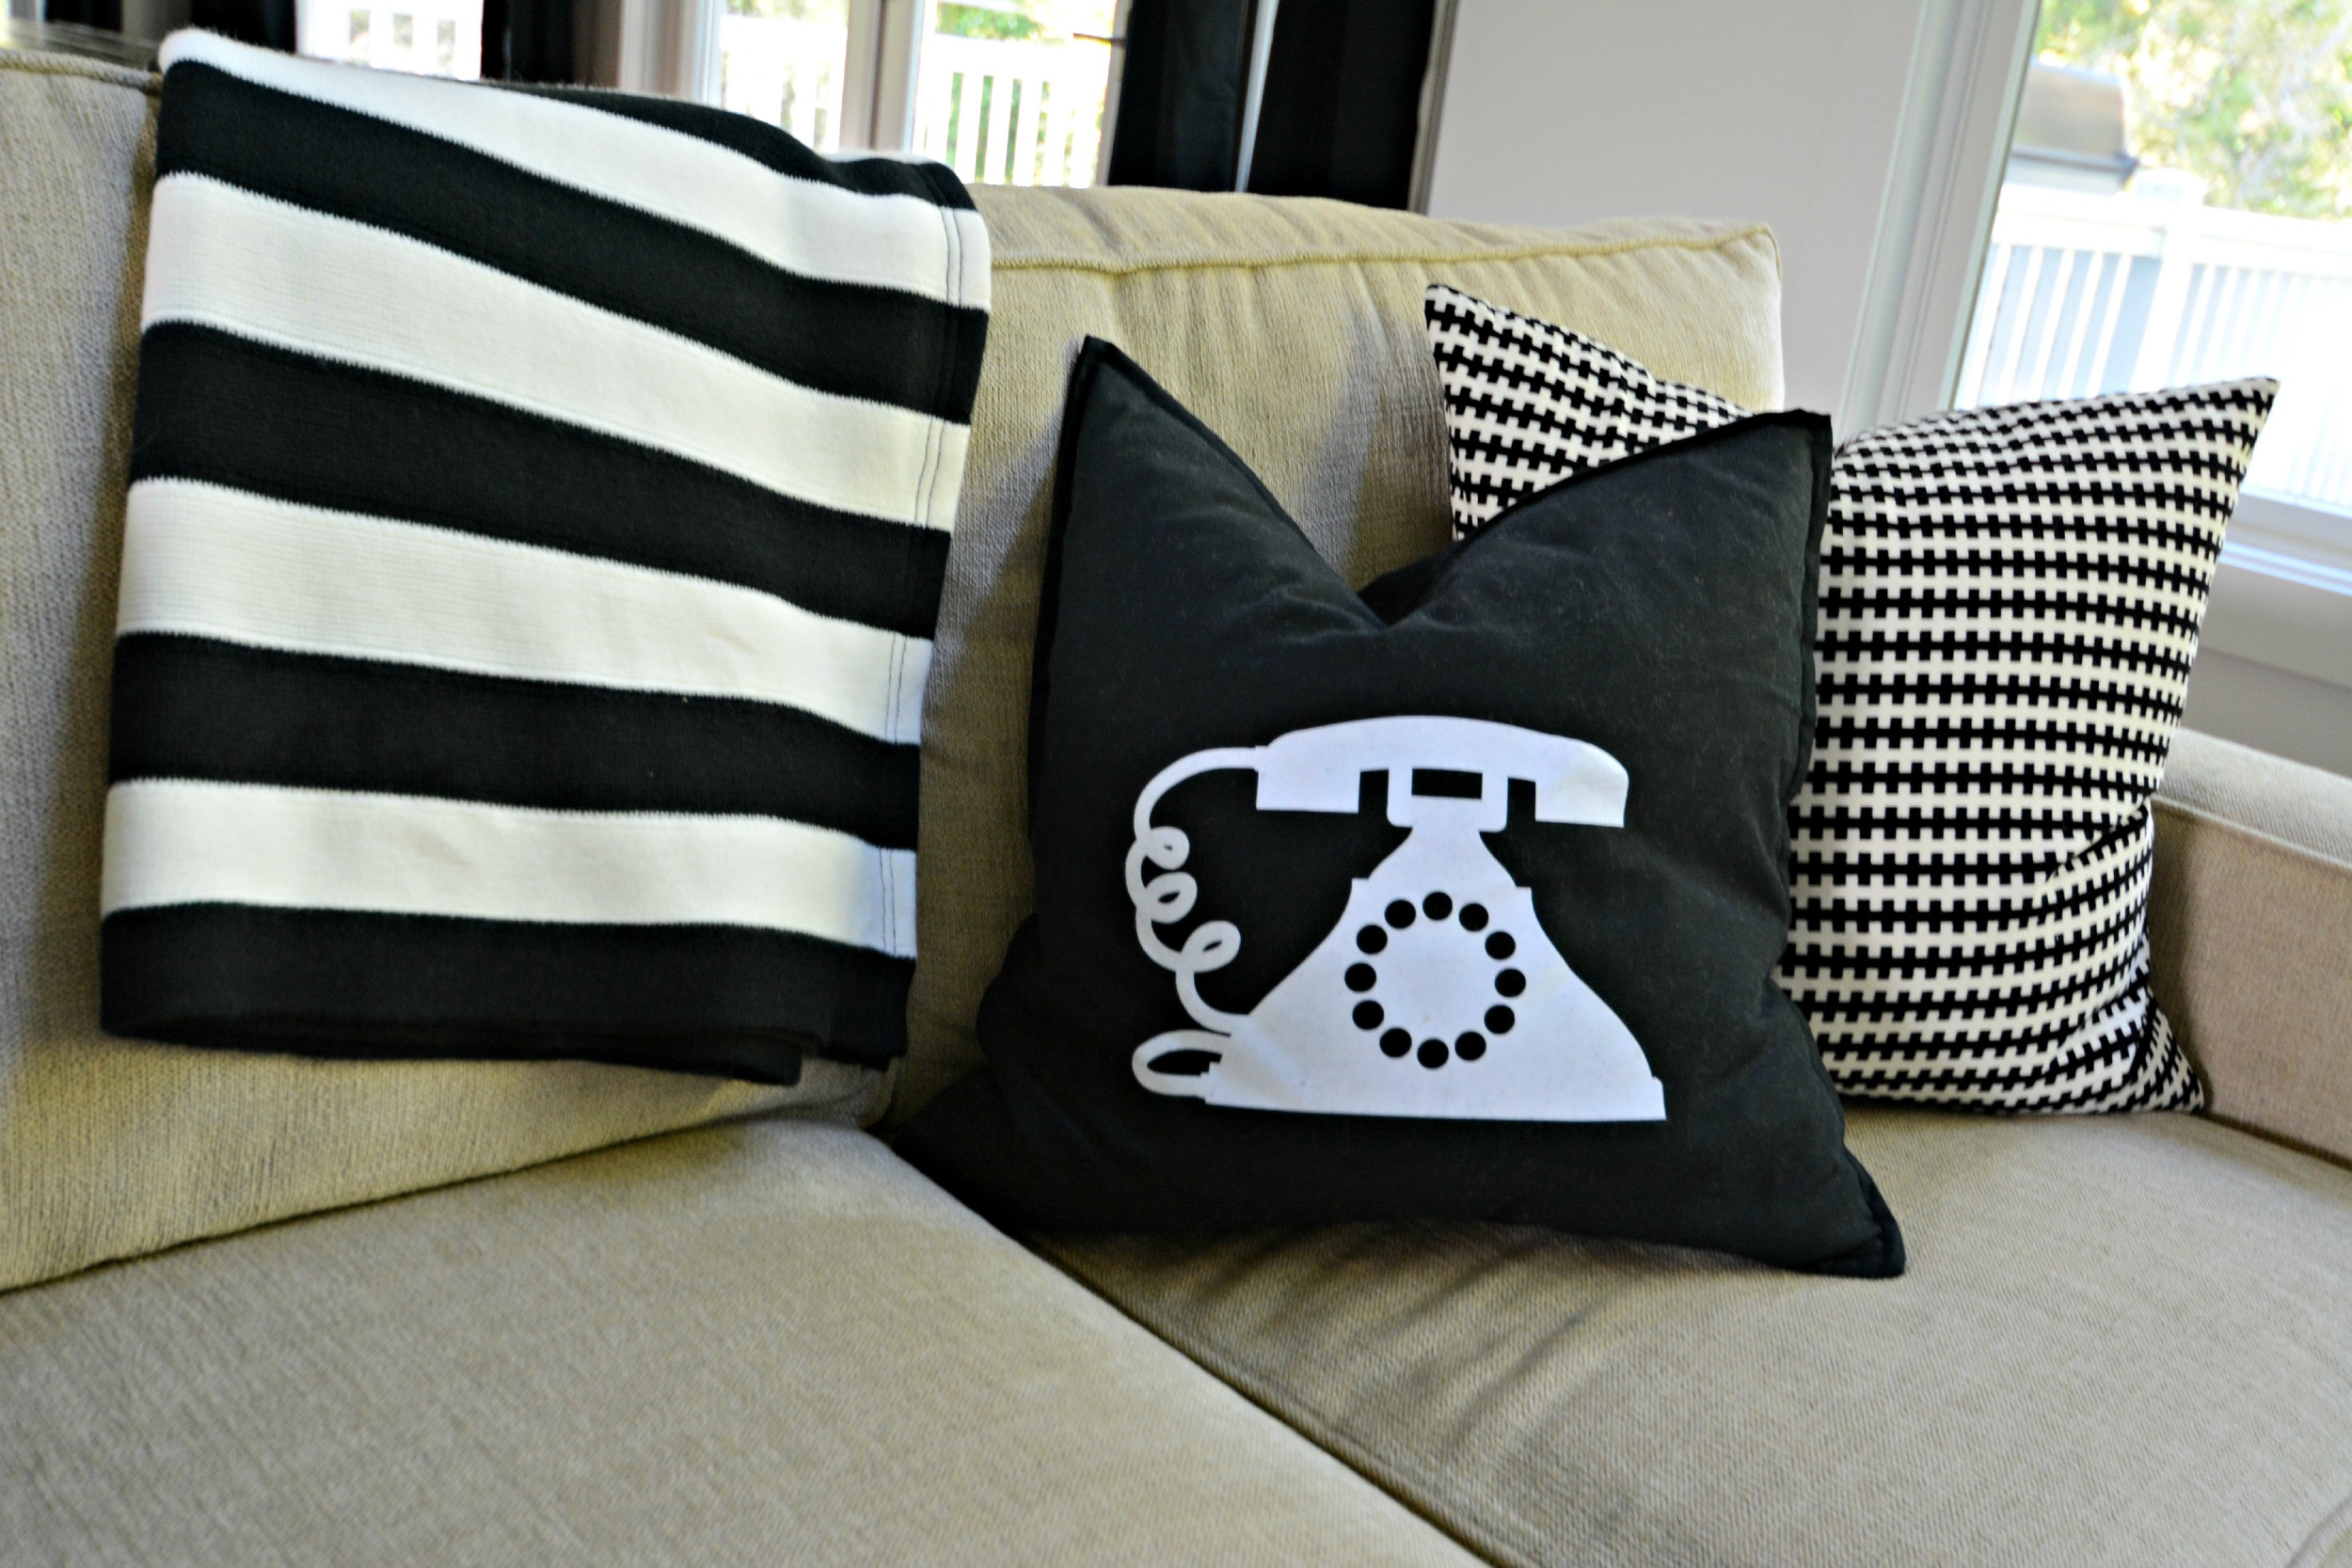 Sources for Inexpensive Pillows